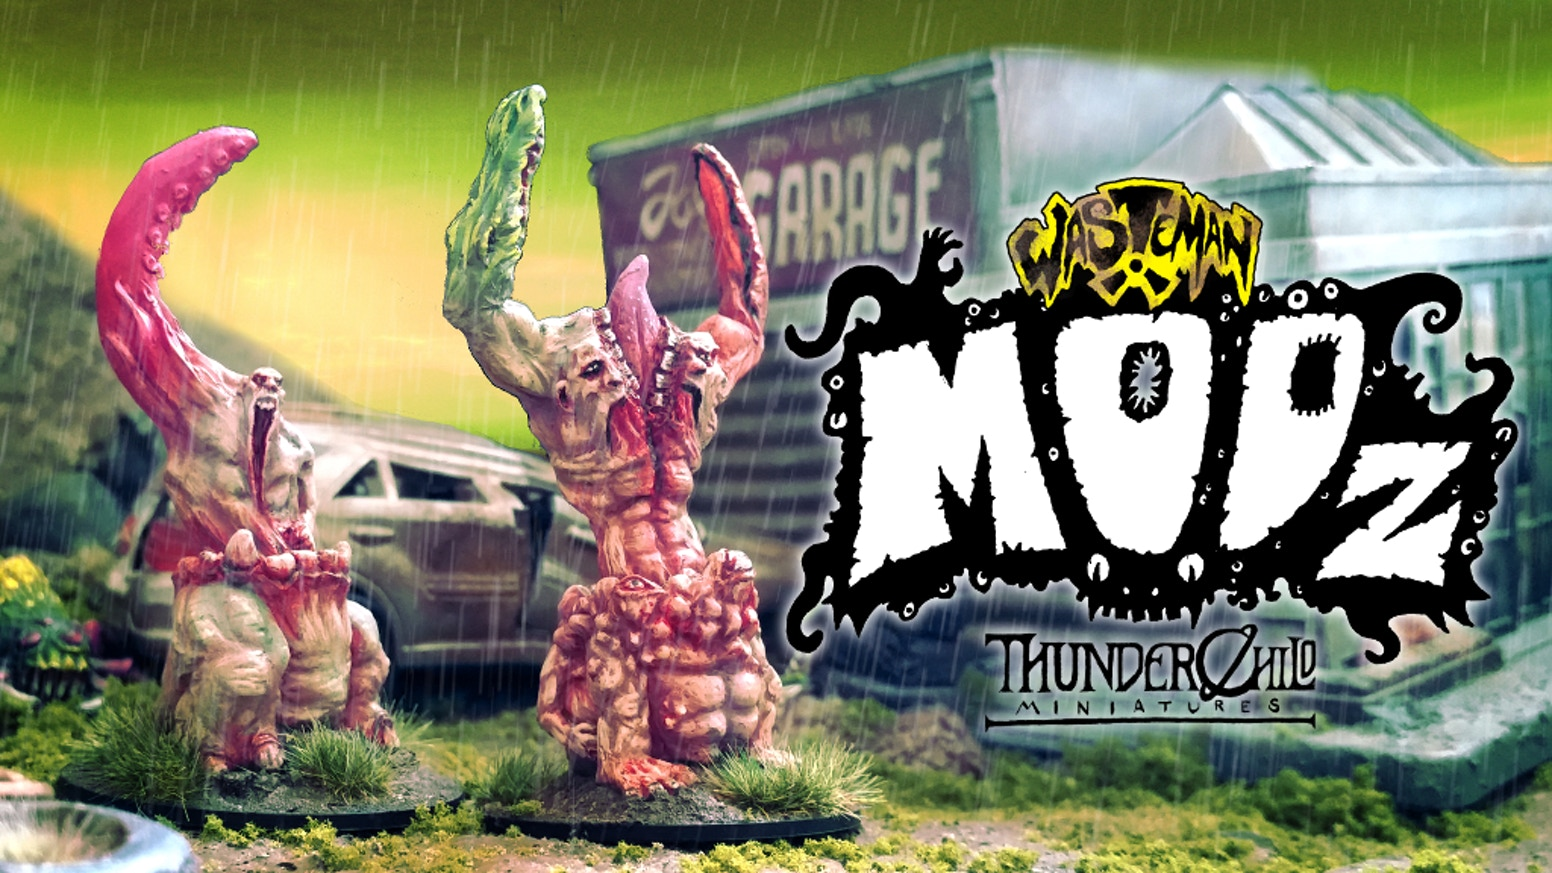 A range of interchangeable mutant miniatures design for Wasteman: A Game of desperate conflicts in a desolate future!